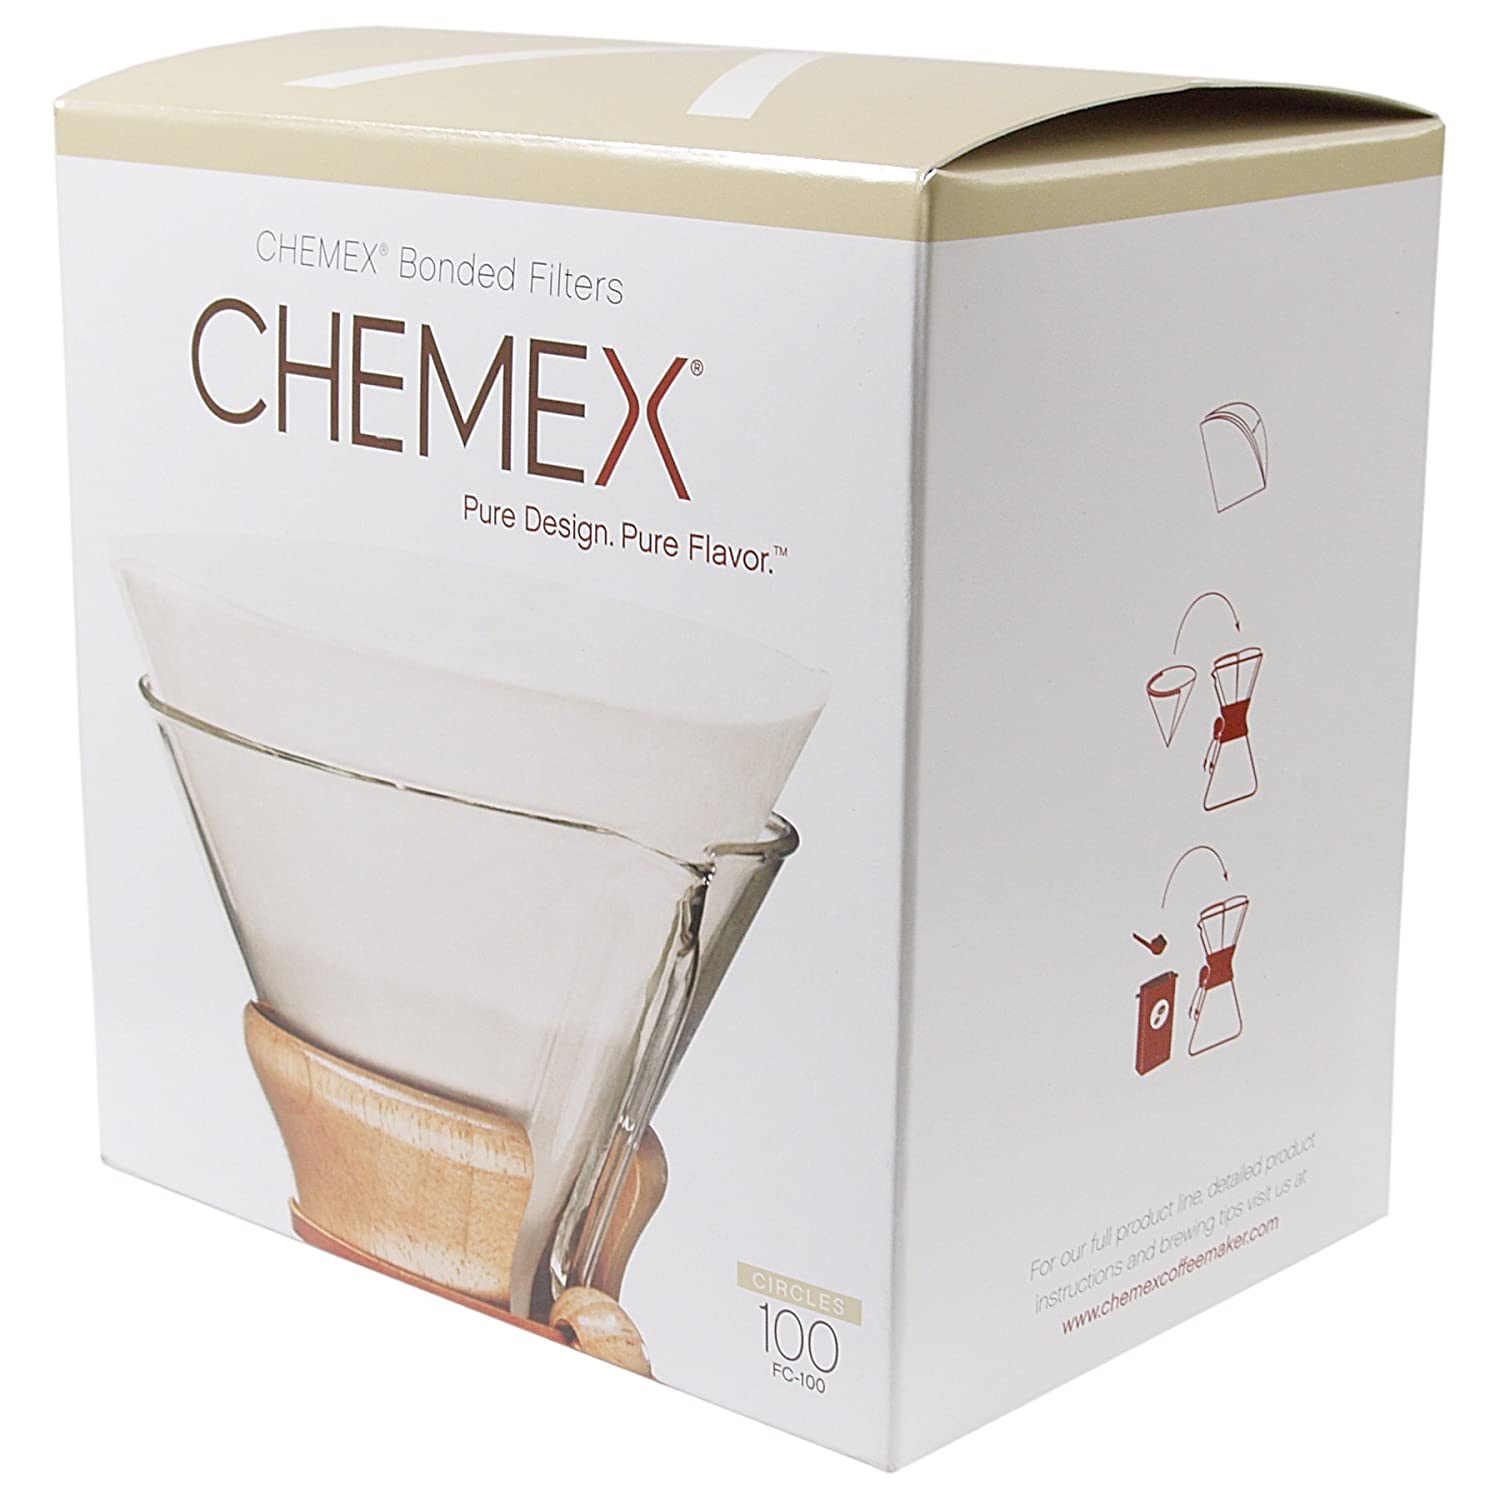 Best Coffee Maker With Paper Filter : Chemex Coffee Maker Filter Papers, Pack of 100 eBay